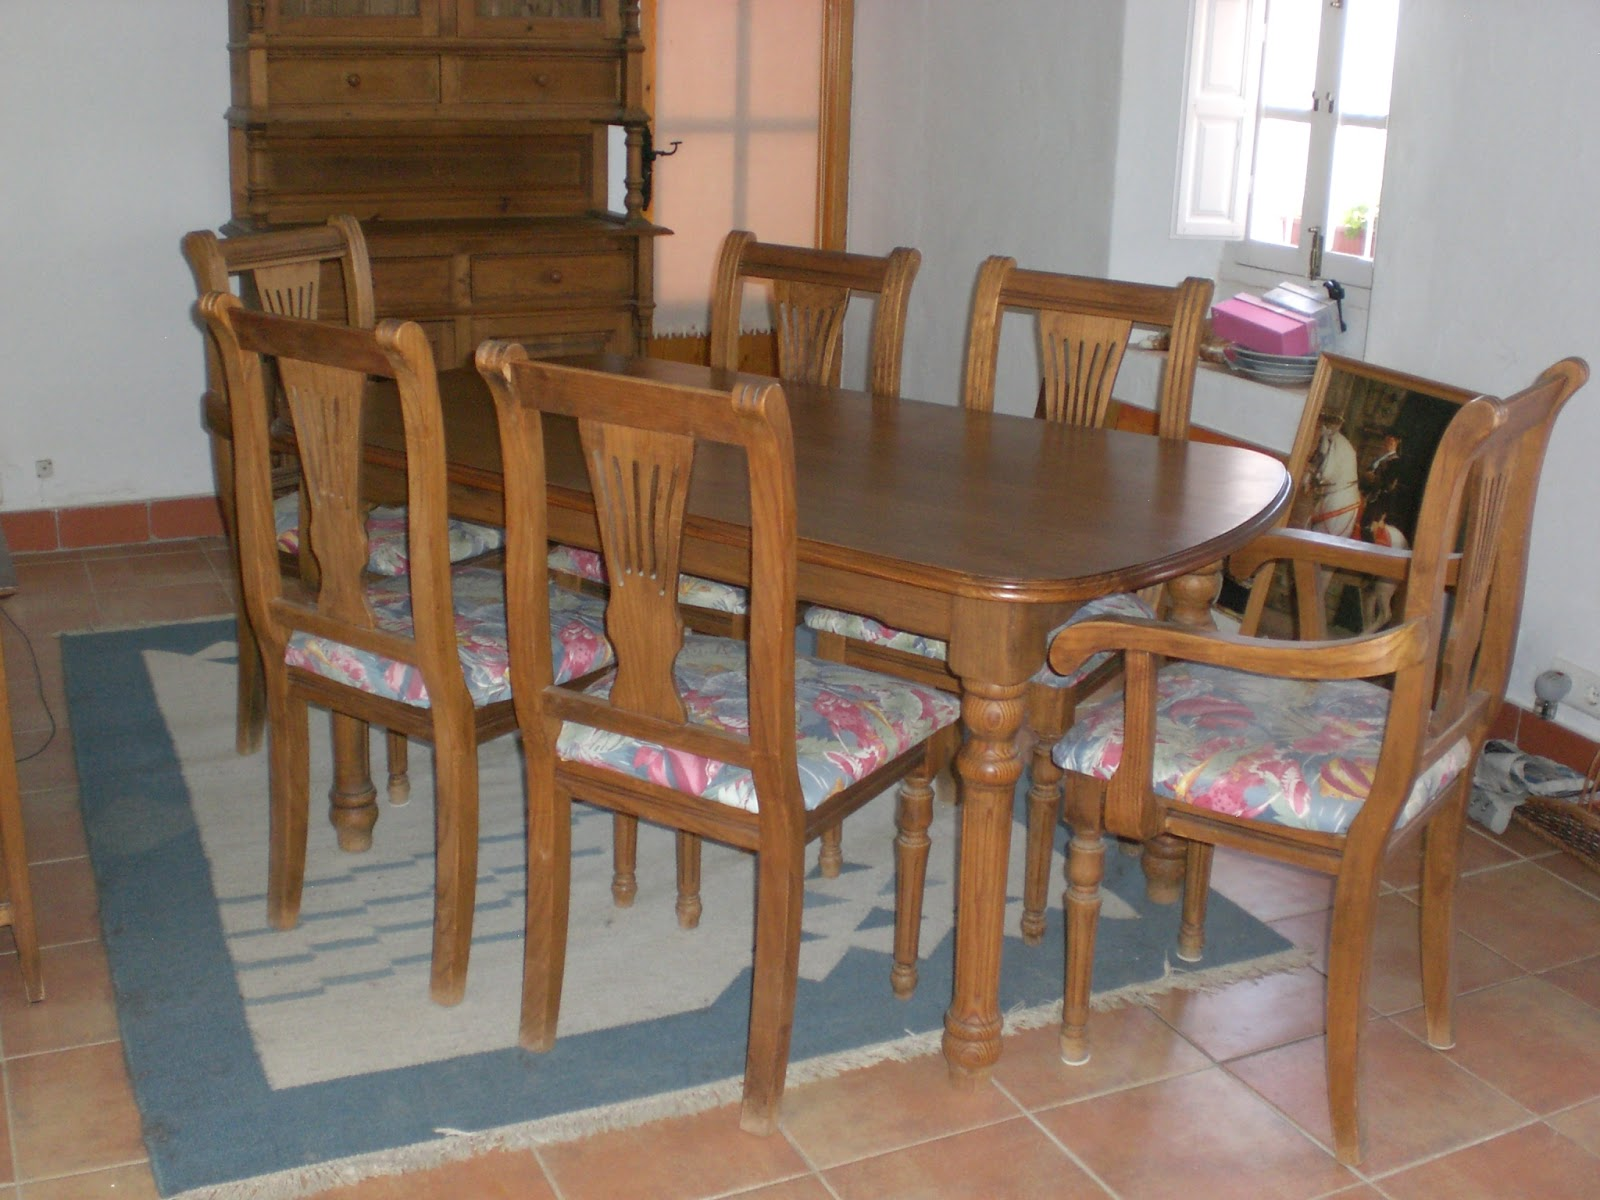 Digame For Sale Dining room furniture : DINING01 from digame-torrox.blogspot.com size 1600 x 1200 jpeg 227kB